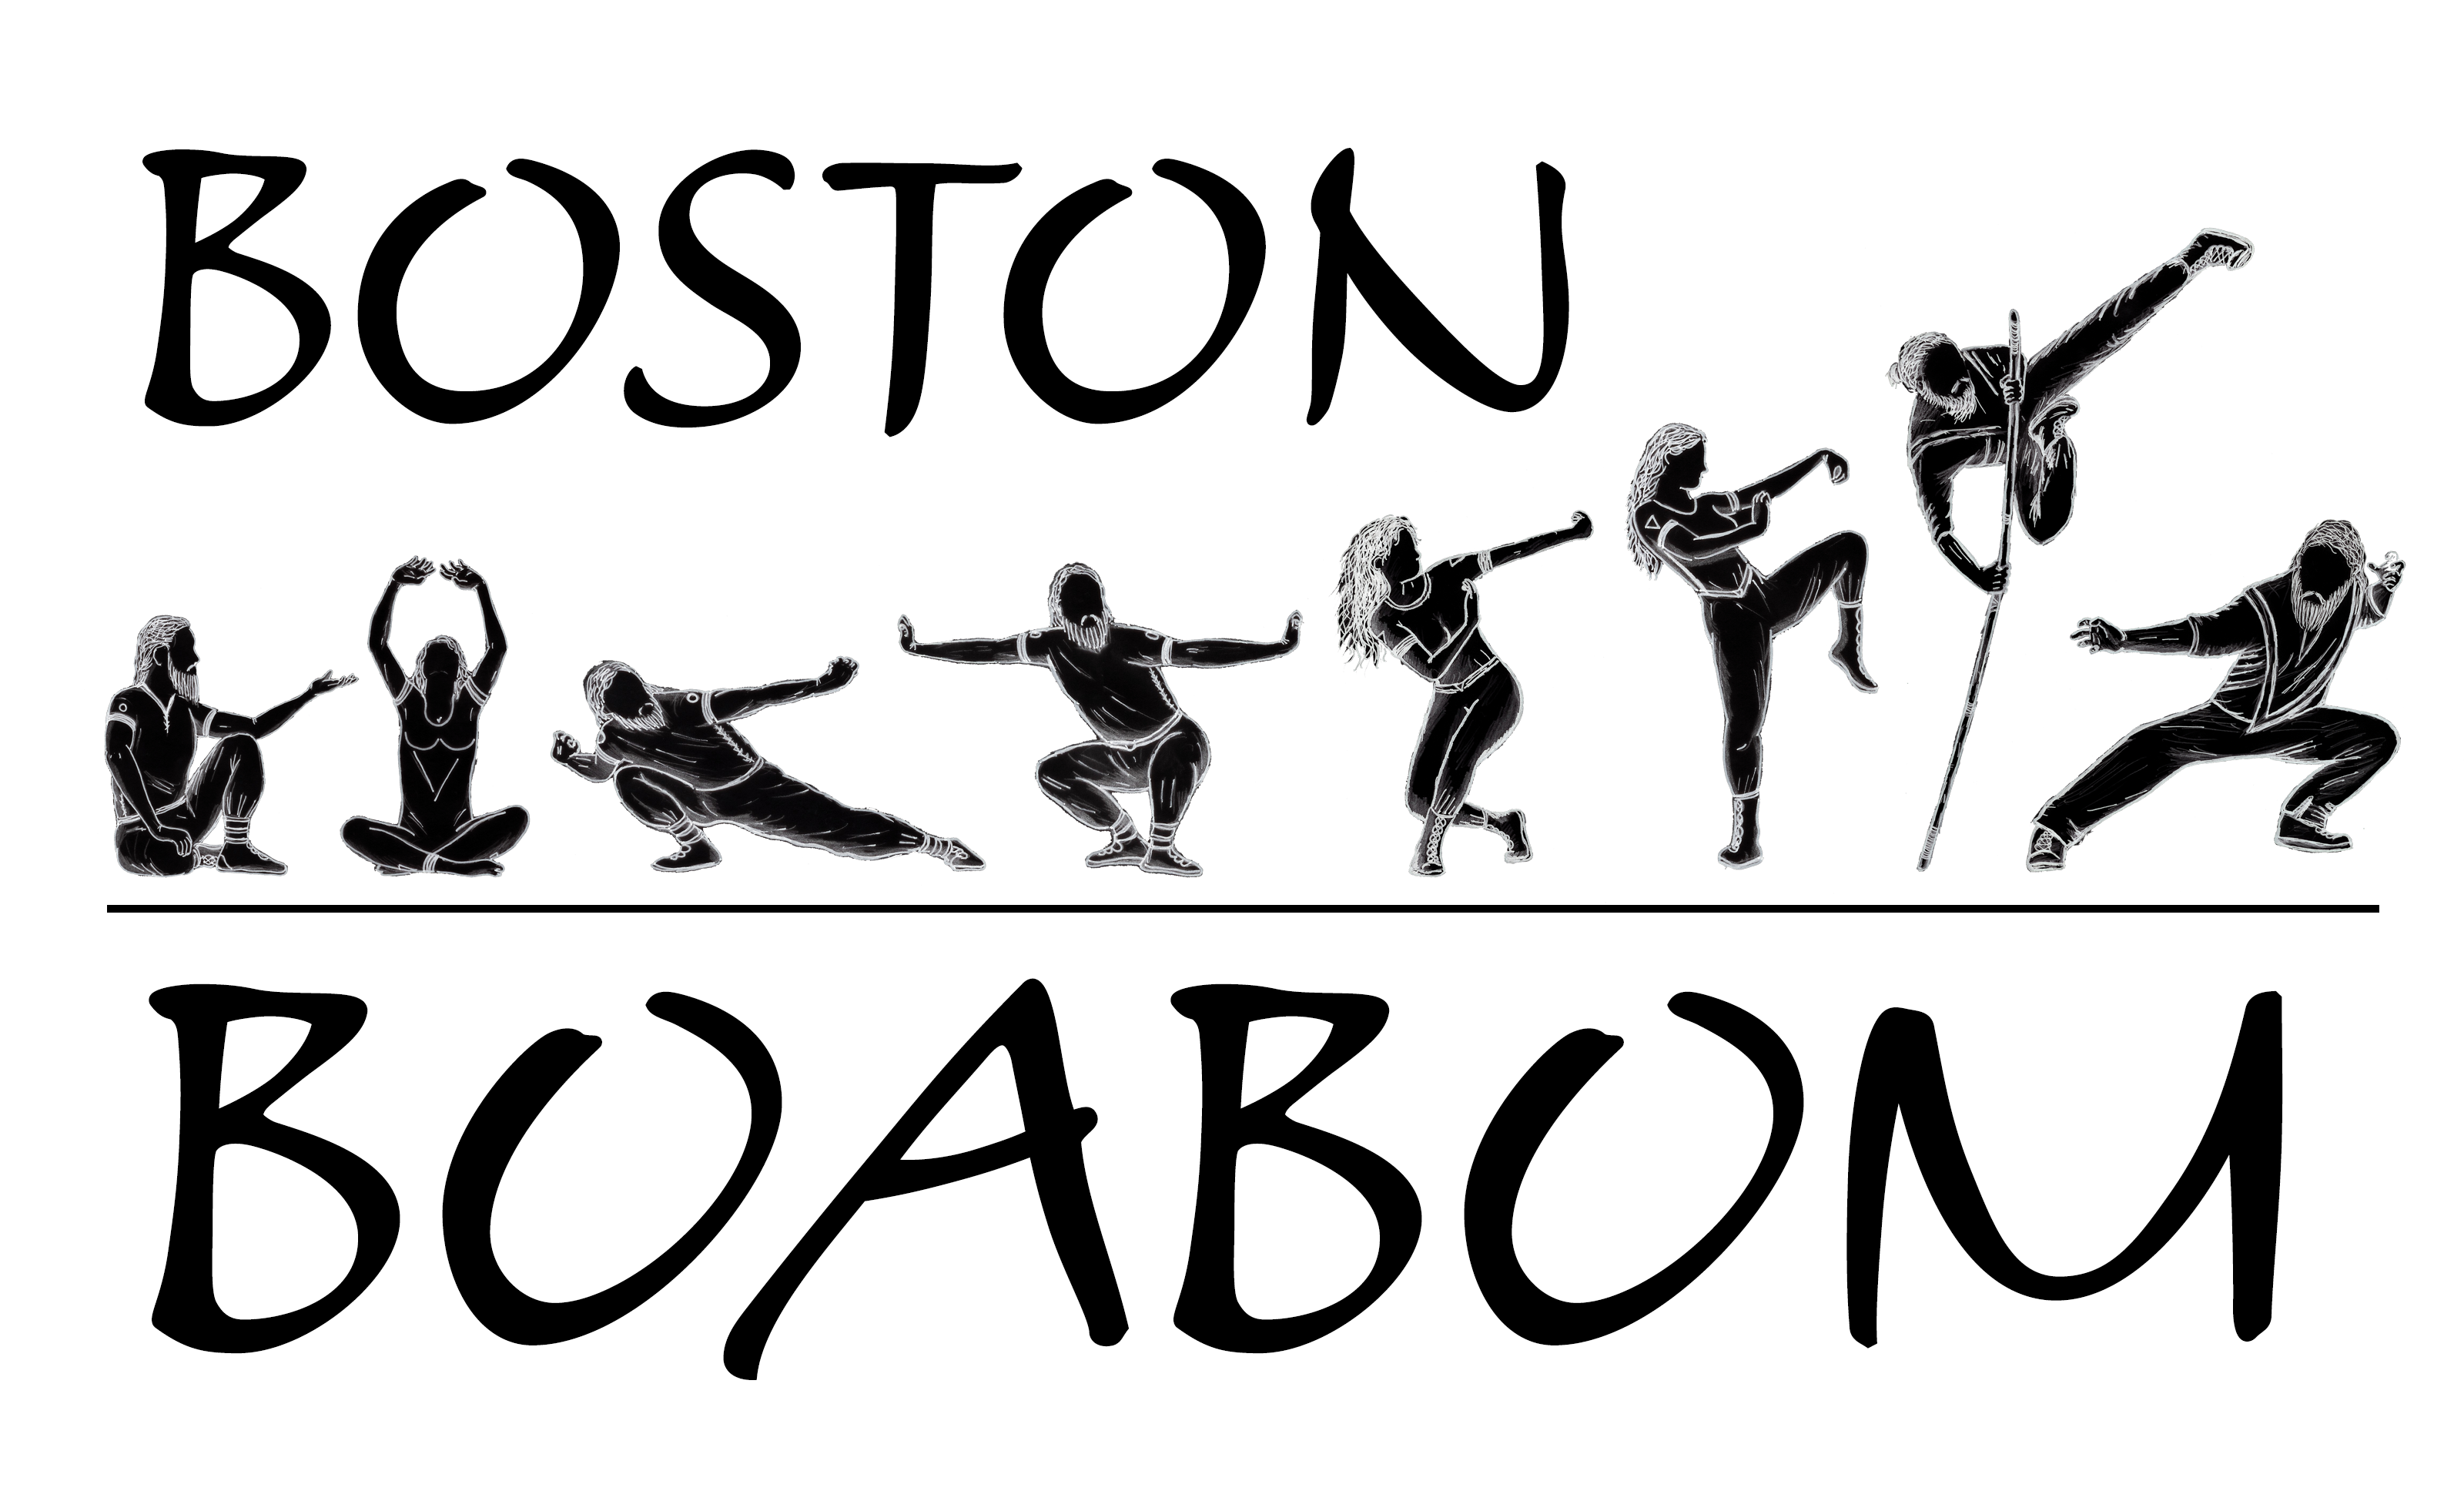 Boston School of Boabom